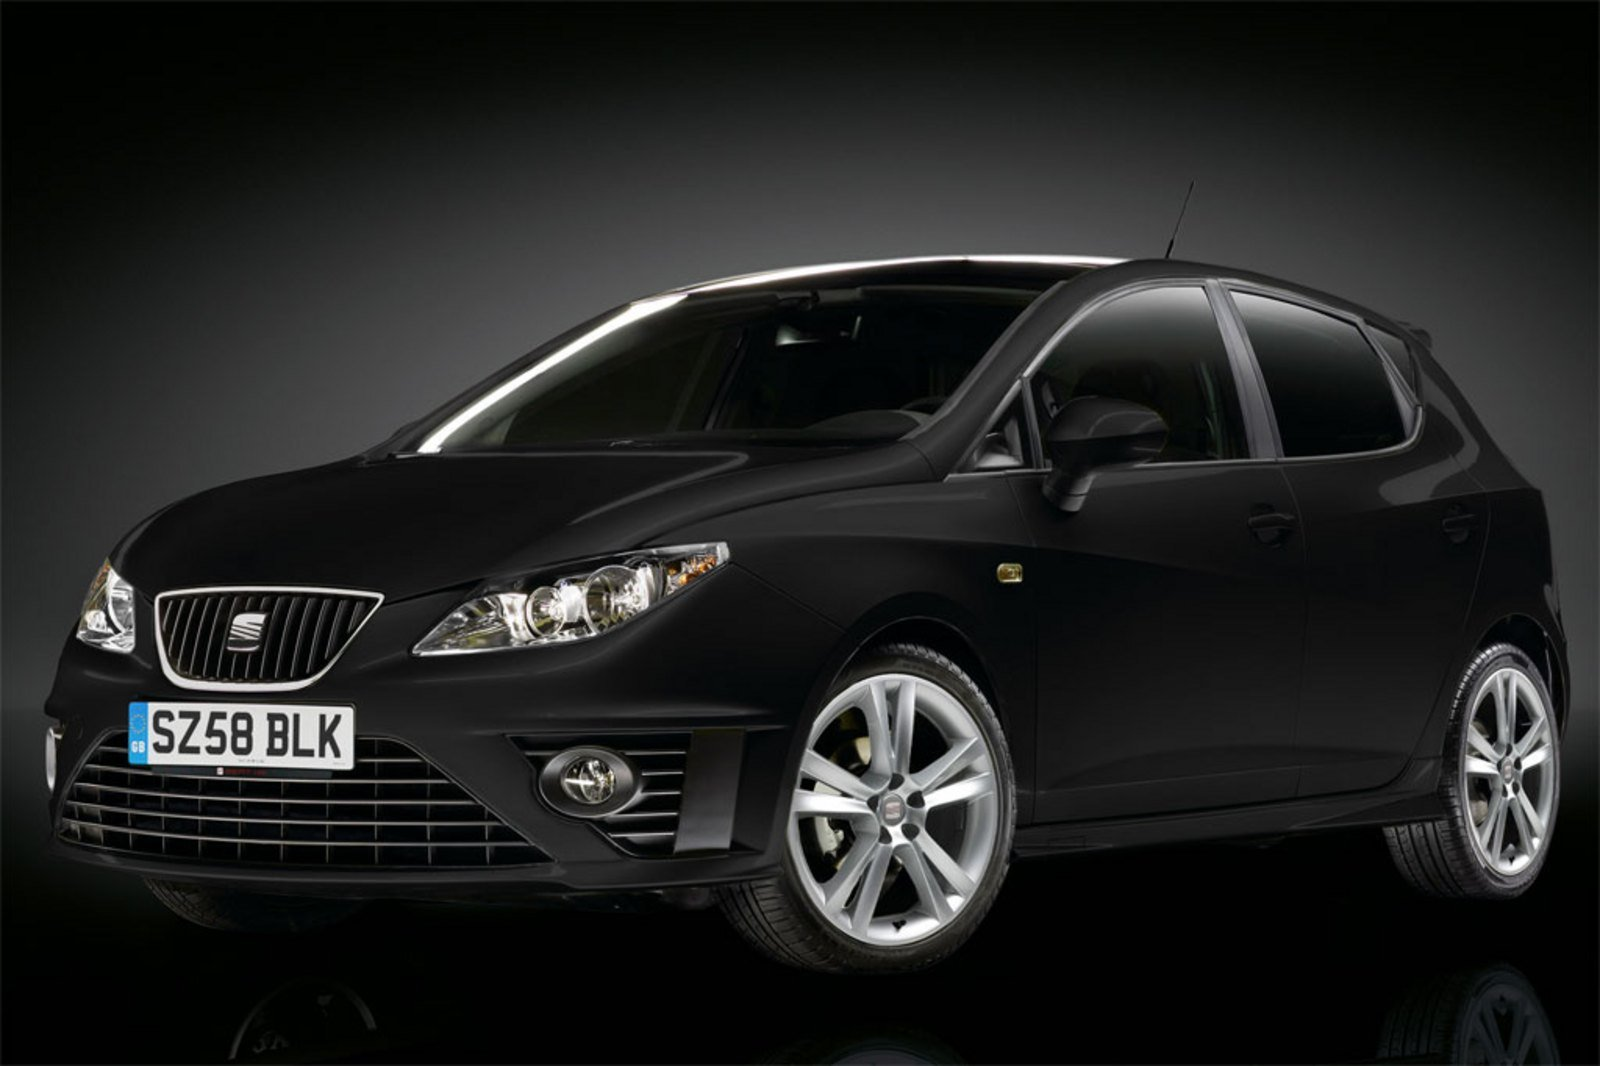 2010 seat ibiza black review top speed. Black Bedroom Furniture Sets. Home Design Ideas